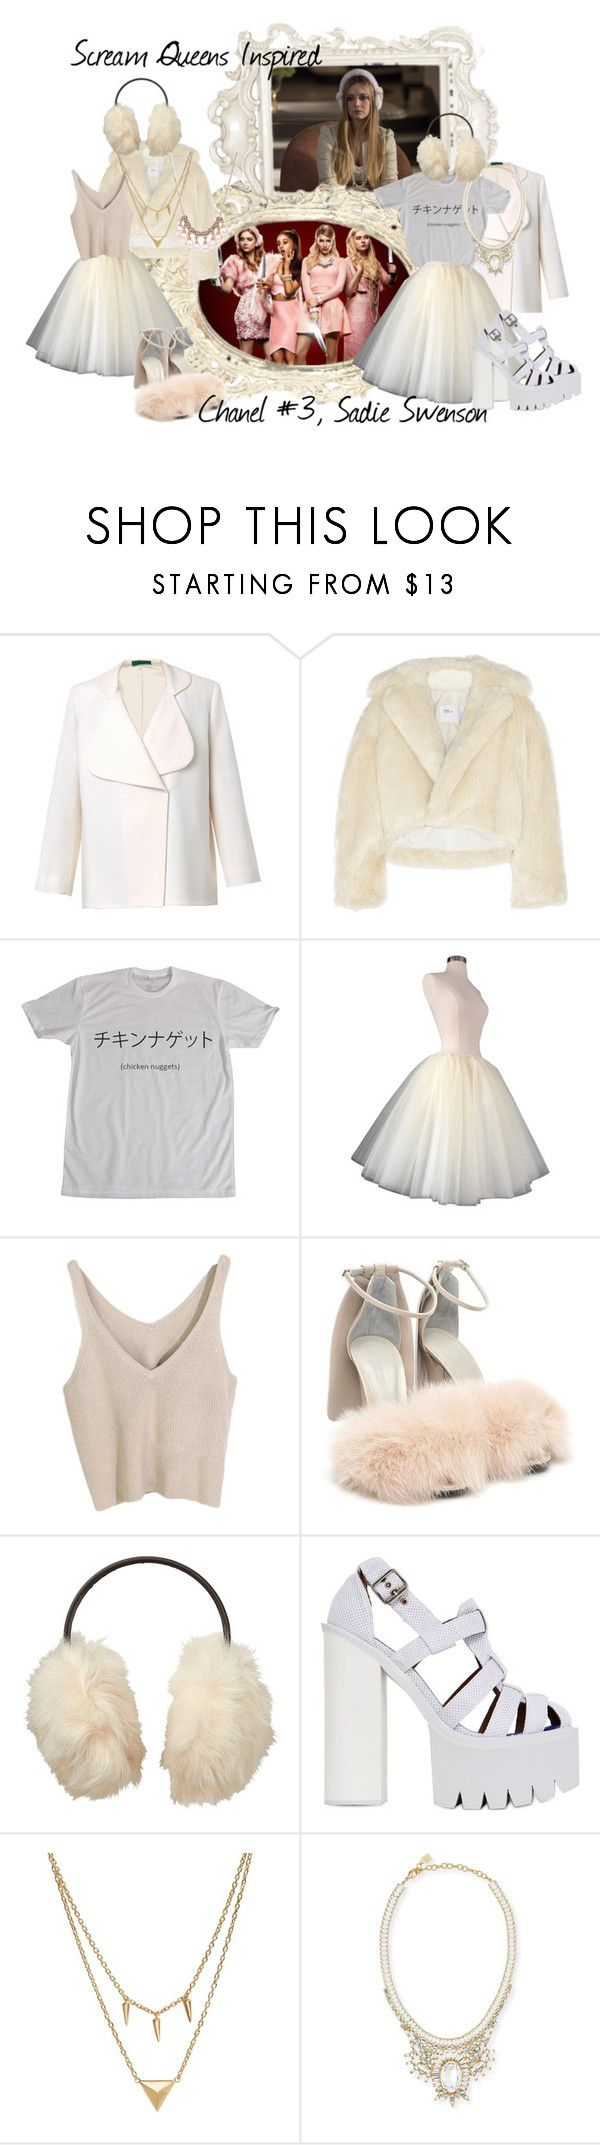 Scream Queens Inspired {Chanel #3, Sadie Swenson} by helpless-angel on Polyvore featuring moda, Toga, Emilia Wickstead, Alexander Wang, Jeffrey Campbell, DANNIJO, Edge of Ember, Uniqlo, ScreamQueens and Chanel3